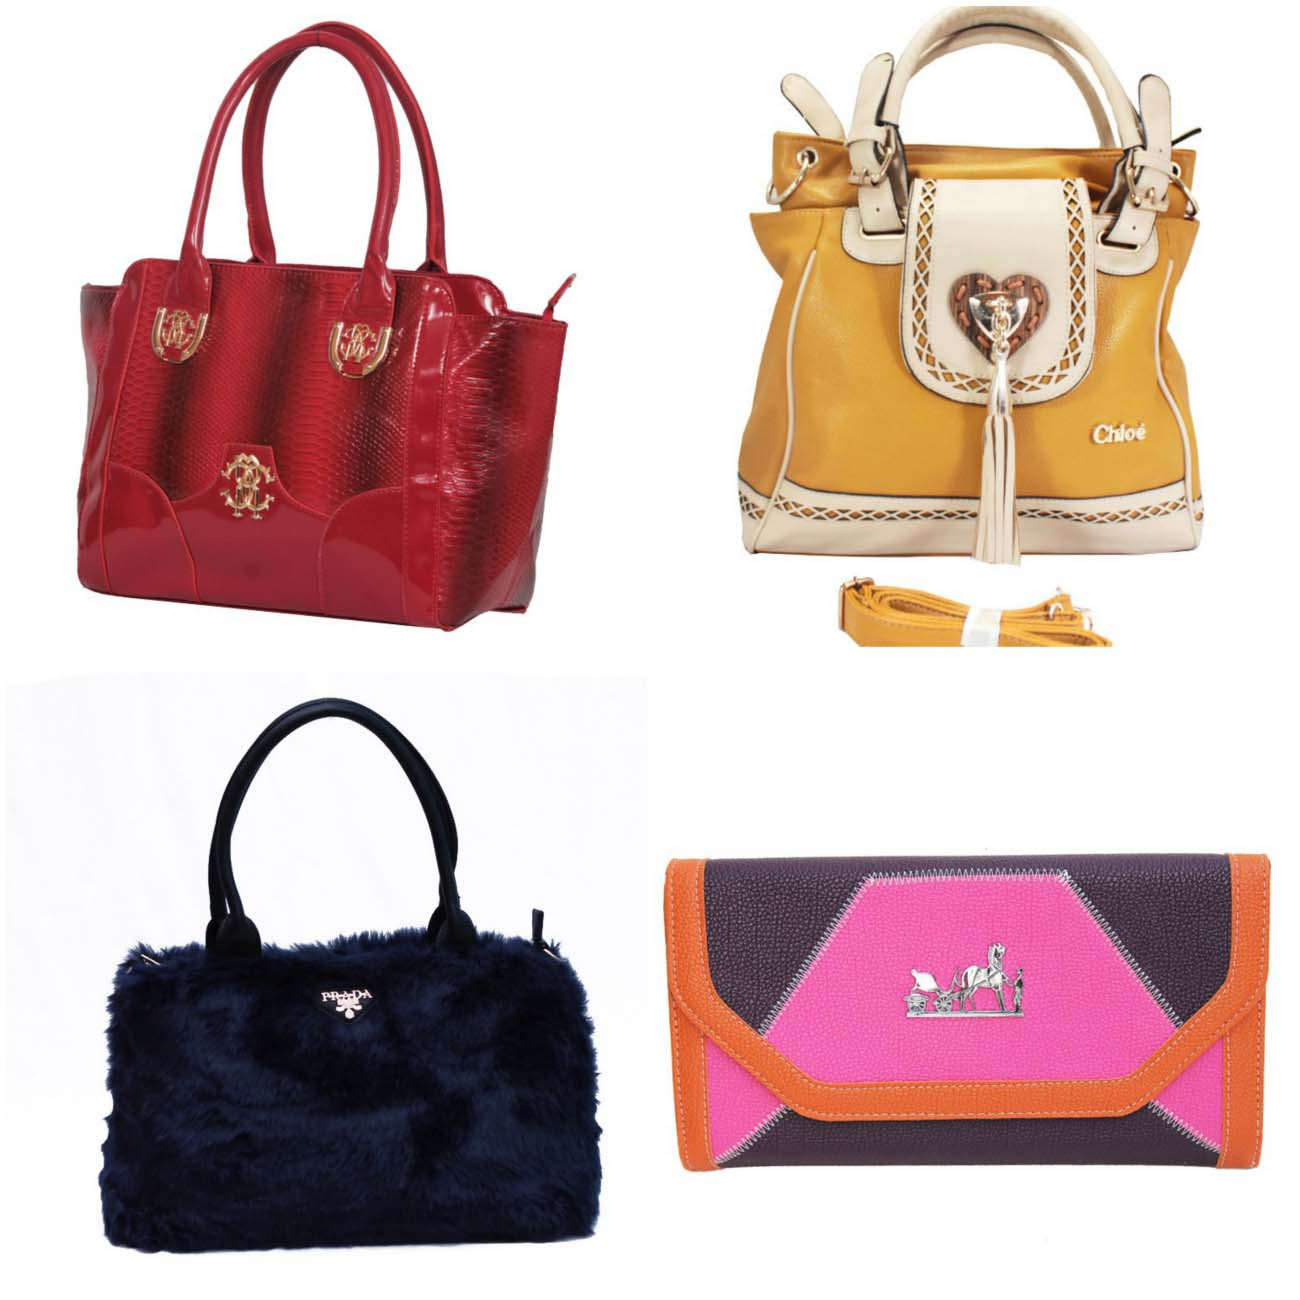 ce459399b932 BnB Bags And Clutches Collection 2016-2017